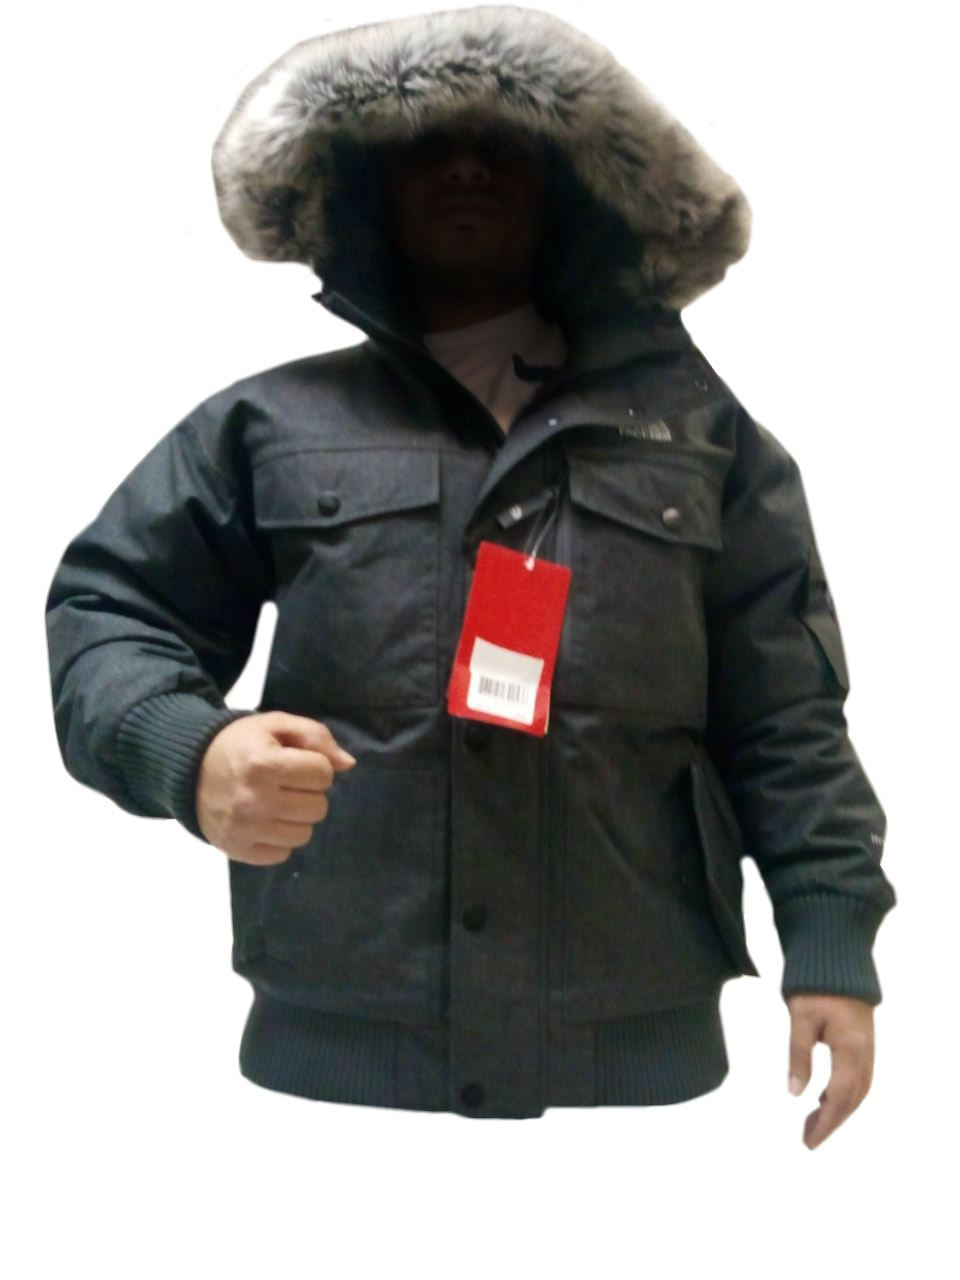 The North Face Men's Gotham Winter Jacket - 550 Goose fill